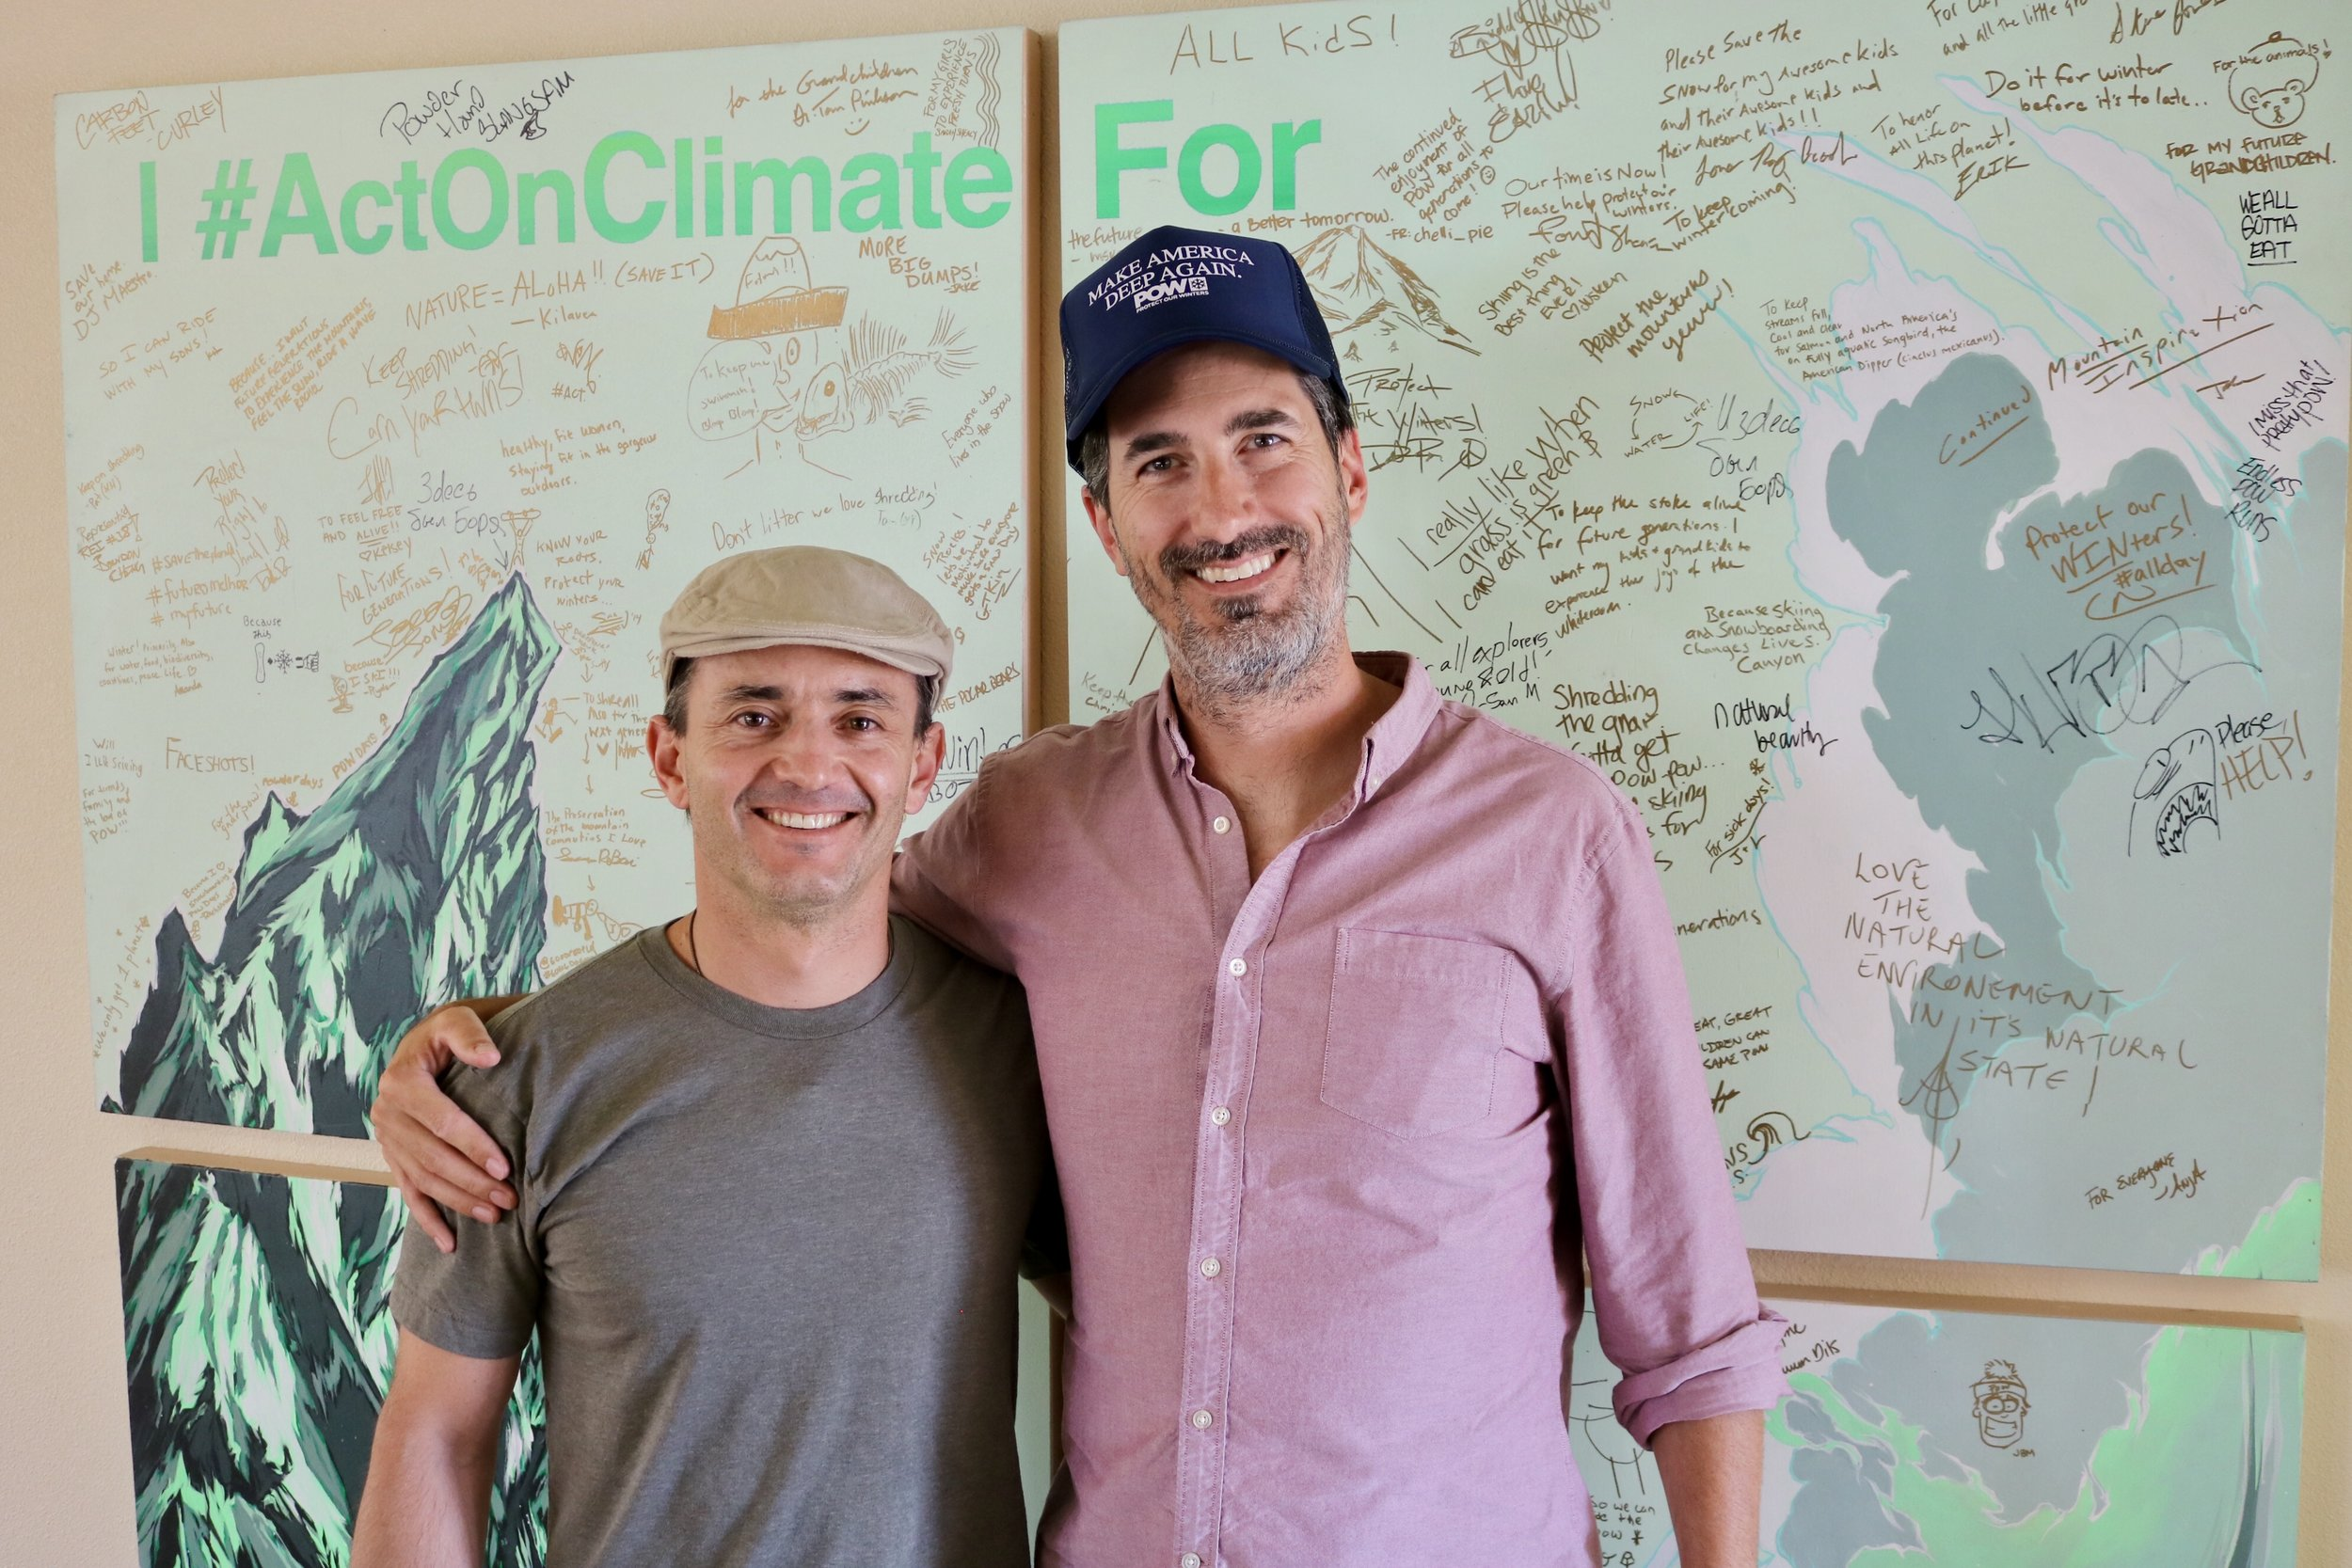 Mario Molina - Executive Director of Protect Our Winters, a climate advocacy non-profit making a huge impact.